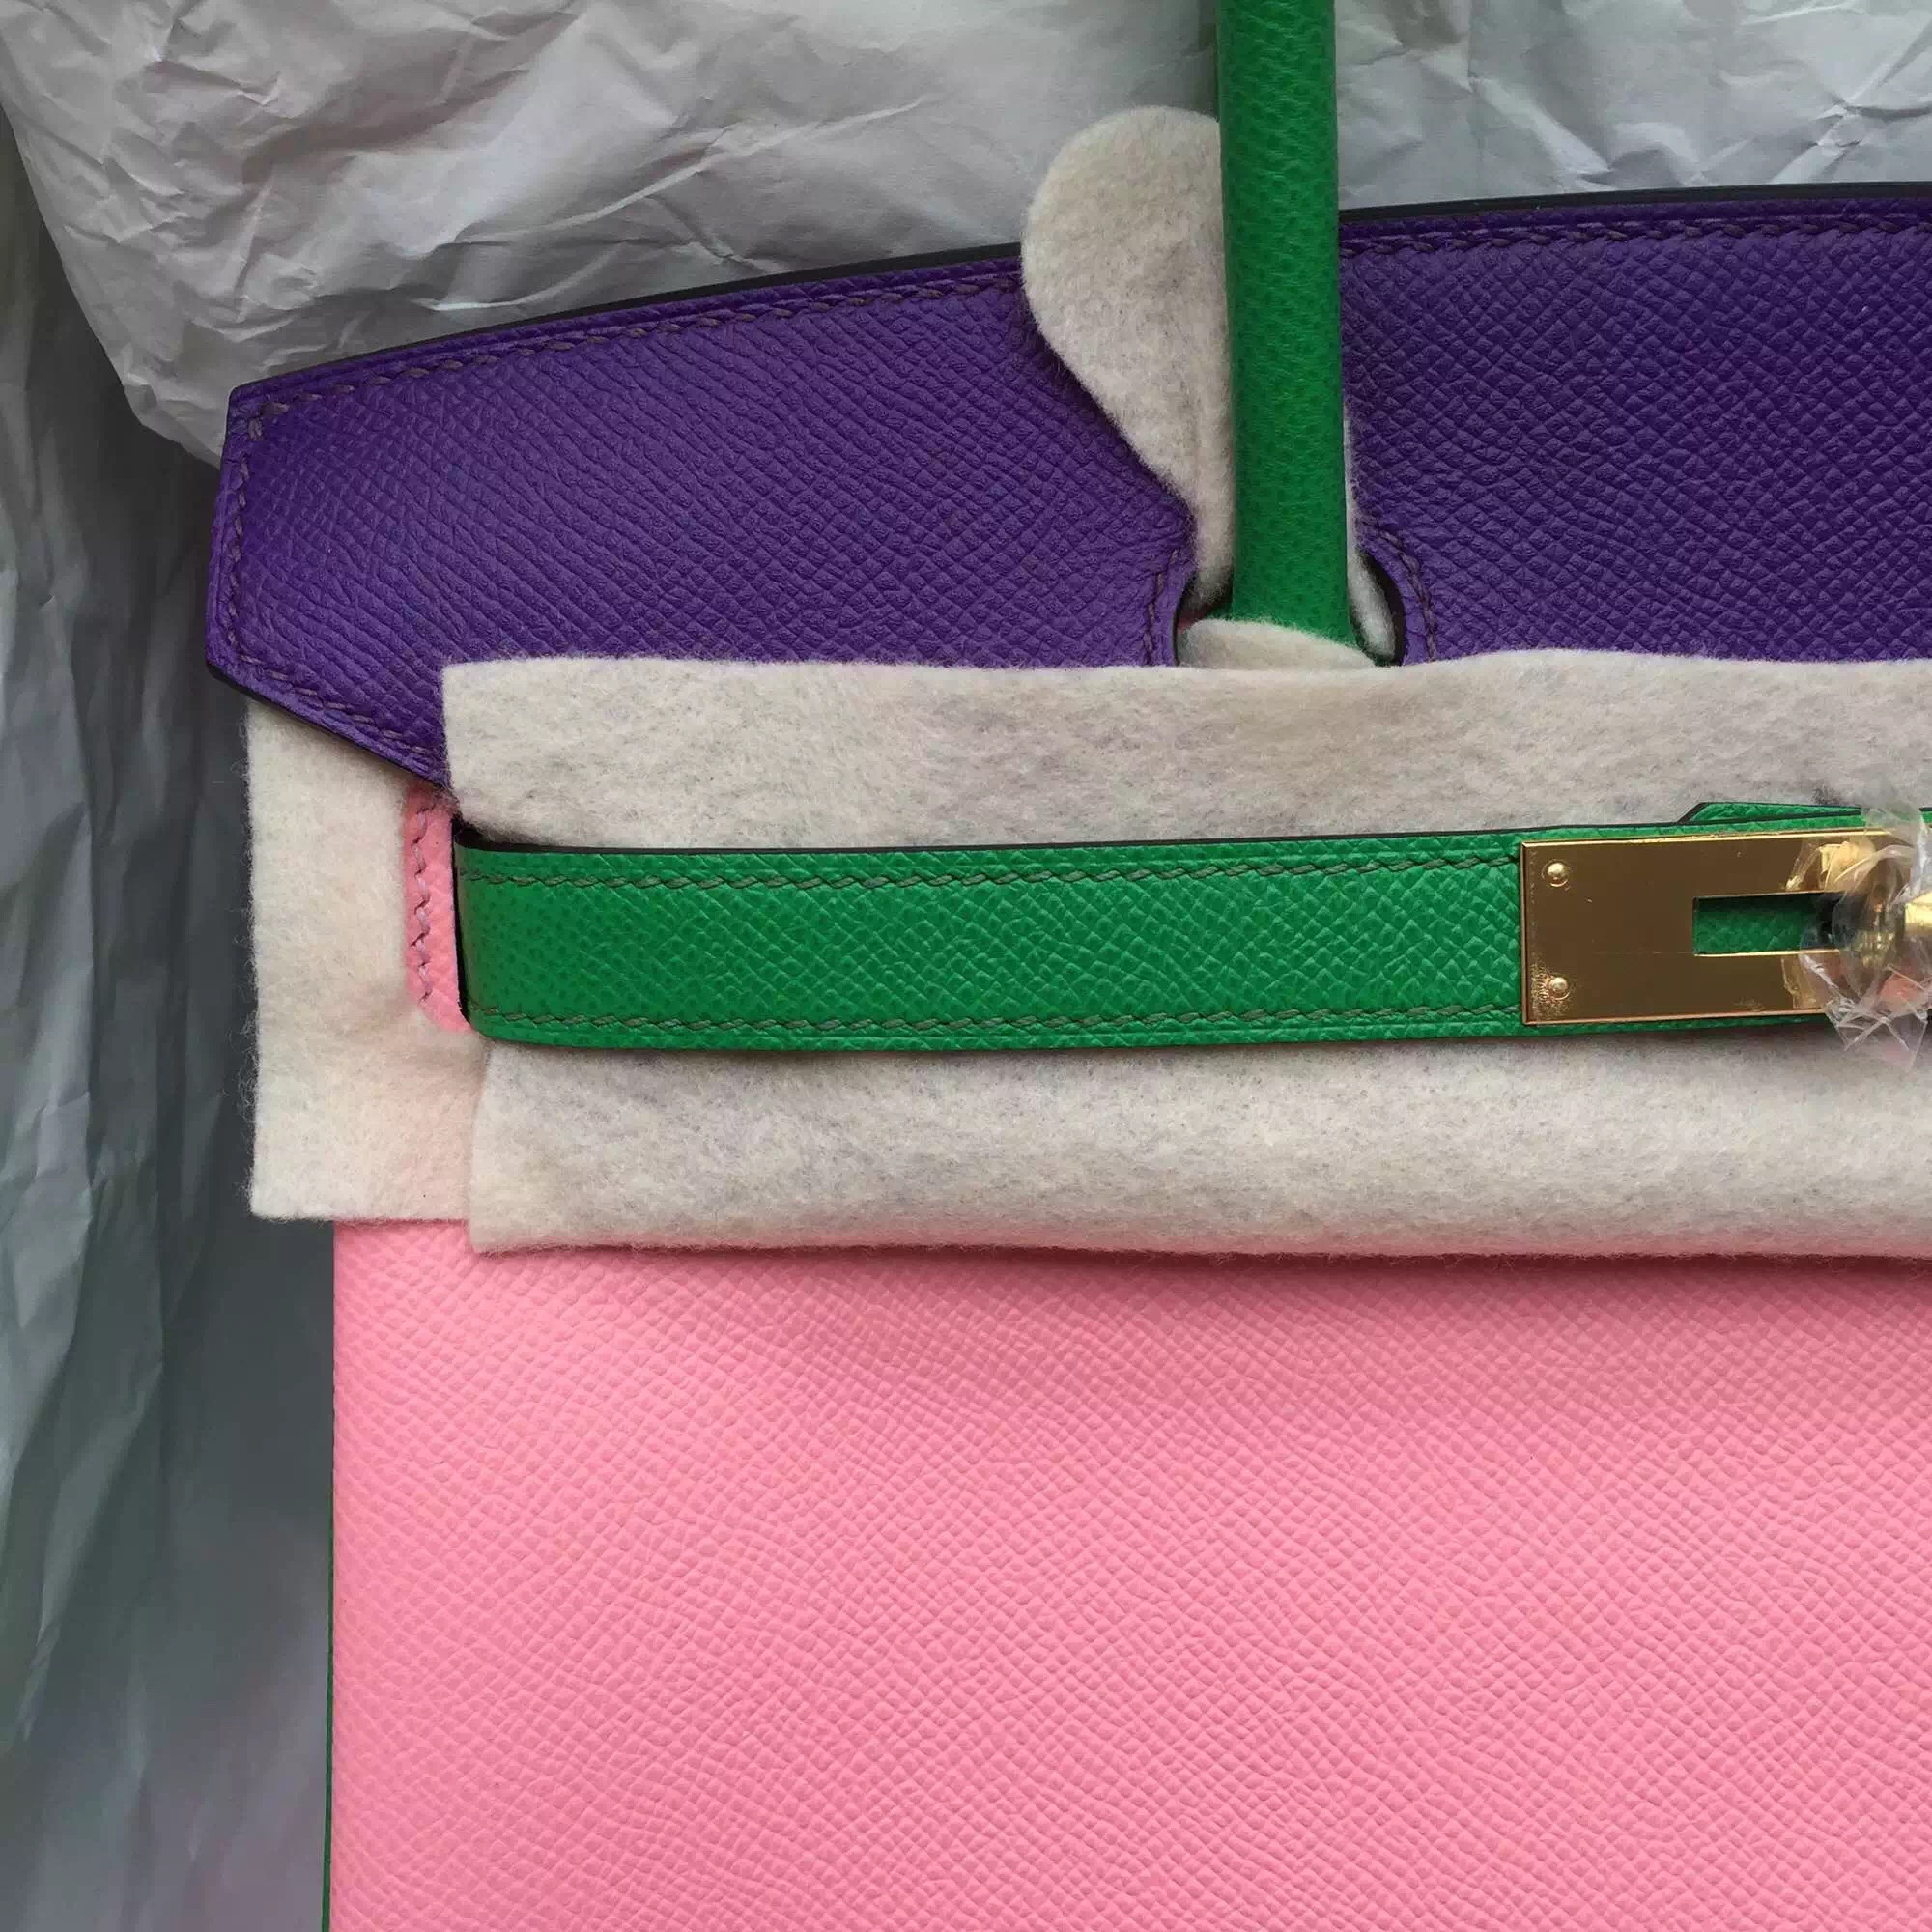 Wholesale Hermes Birkin Bag 30CM 1Q Rose Confetti/1K Bamboo Green/9W Ultraviolet Epsom Leather